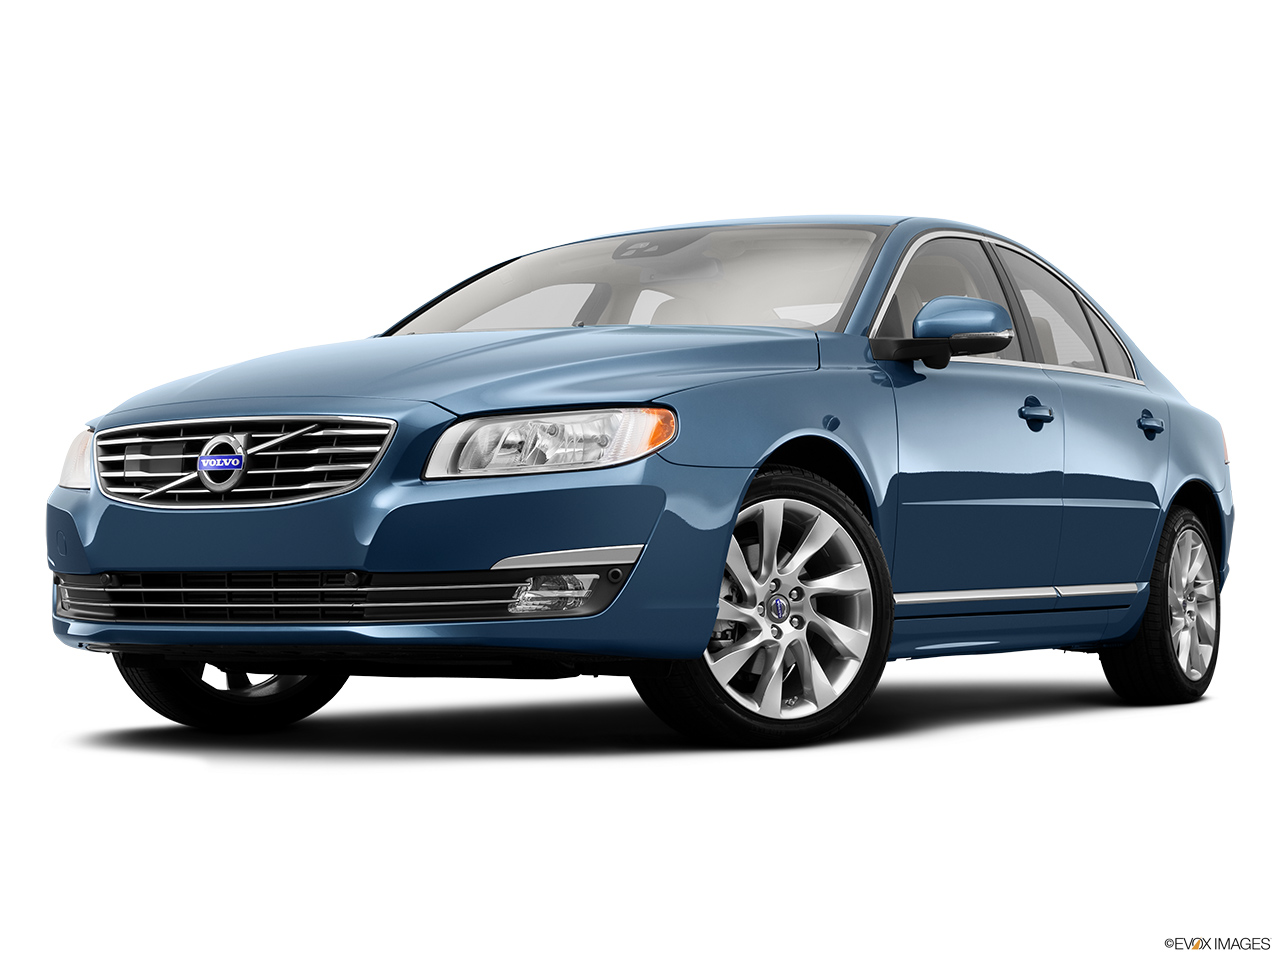 2014 Volvo S80 T6 AWD Platinum Front angle view, low wide perspective.